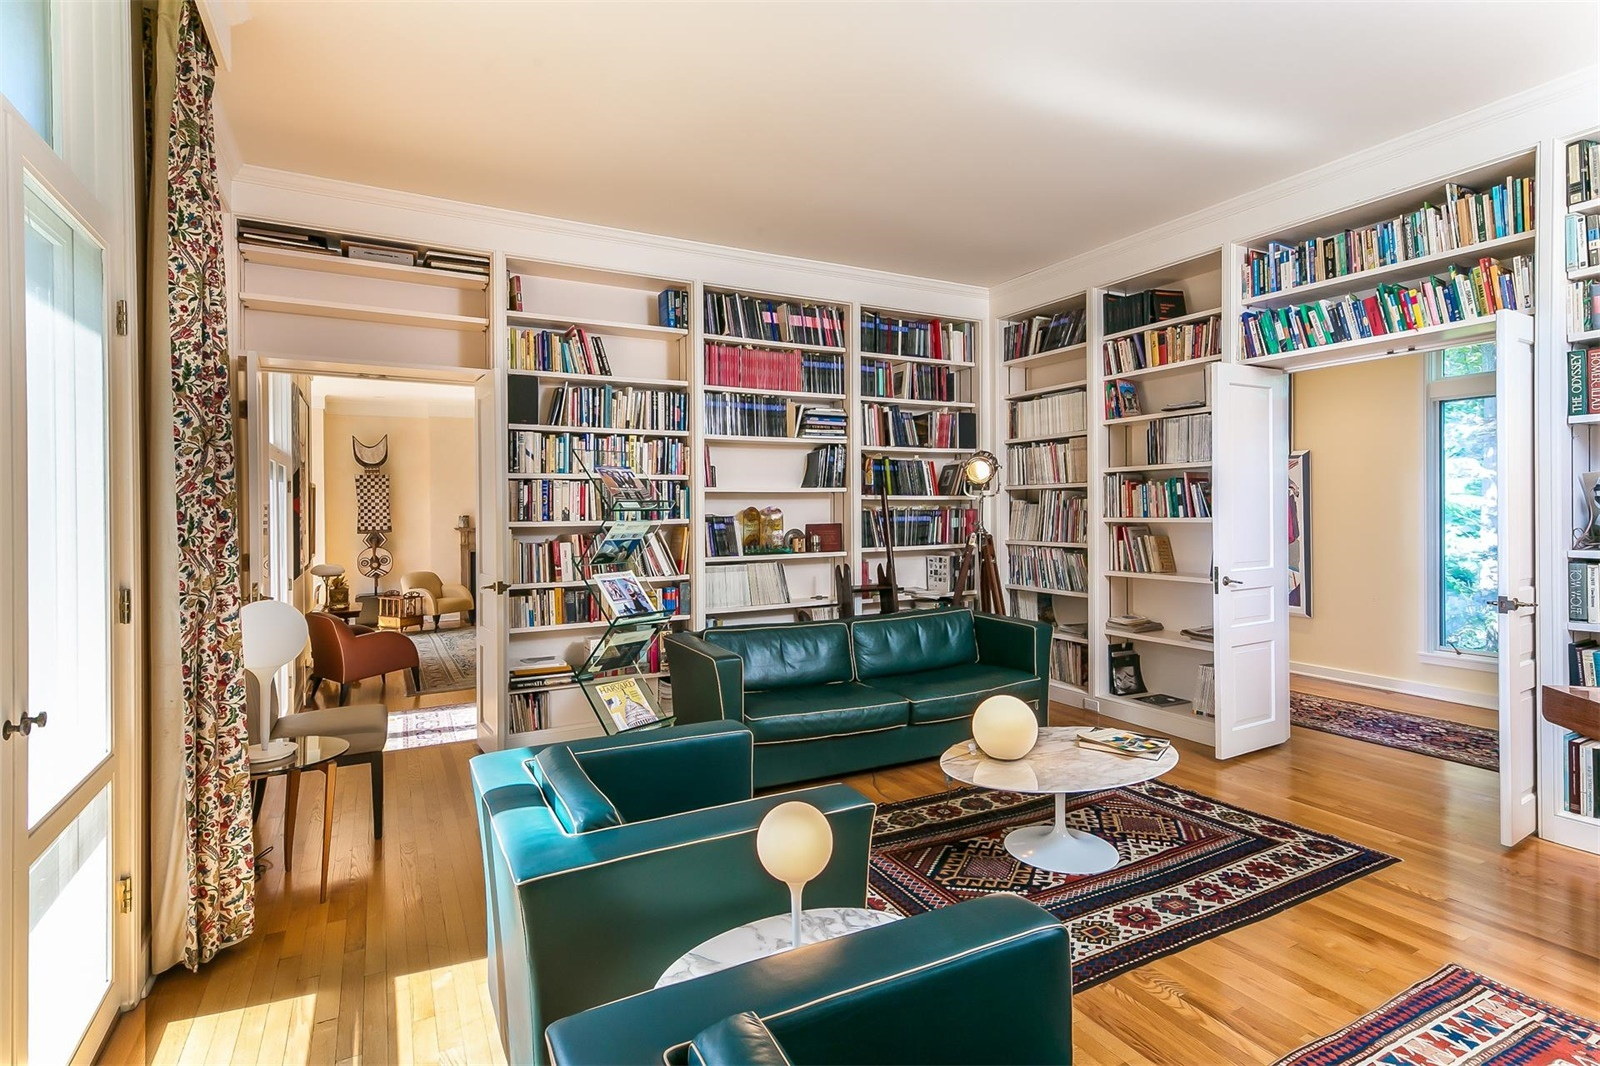 La Maison de Verre's Frank Lloyd Wright-inspired design invites casual living and grand-scale entertaining. A hallway connects the reception areas to an open-plan library and study overlooking the walled gardens.